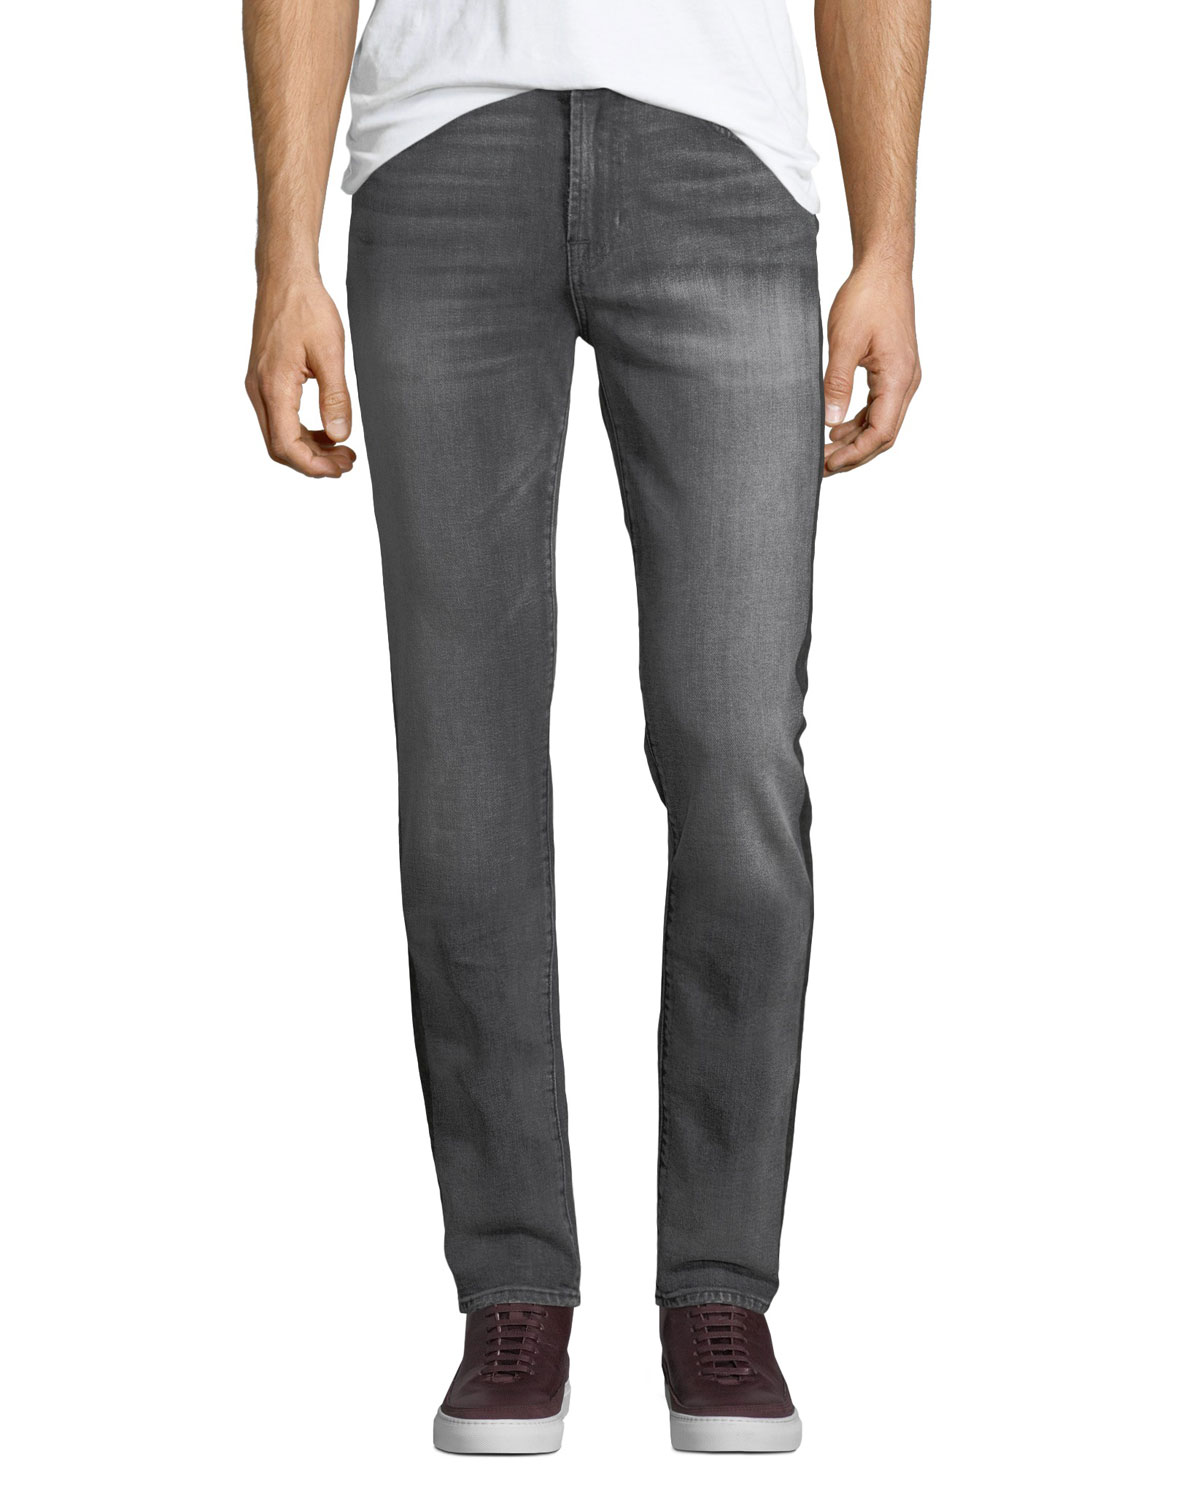 Men's Vagabond Striped Slim Jeans